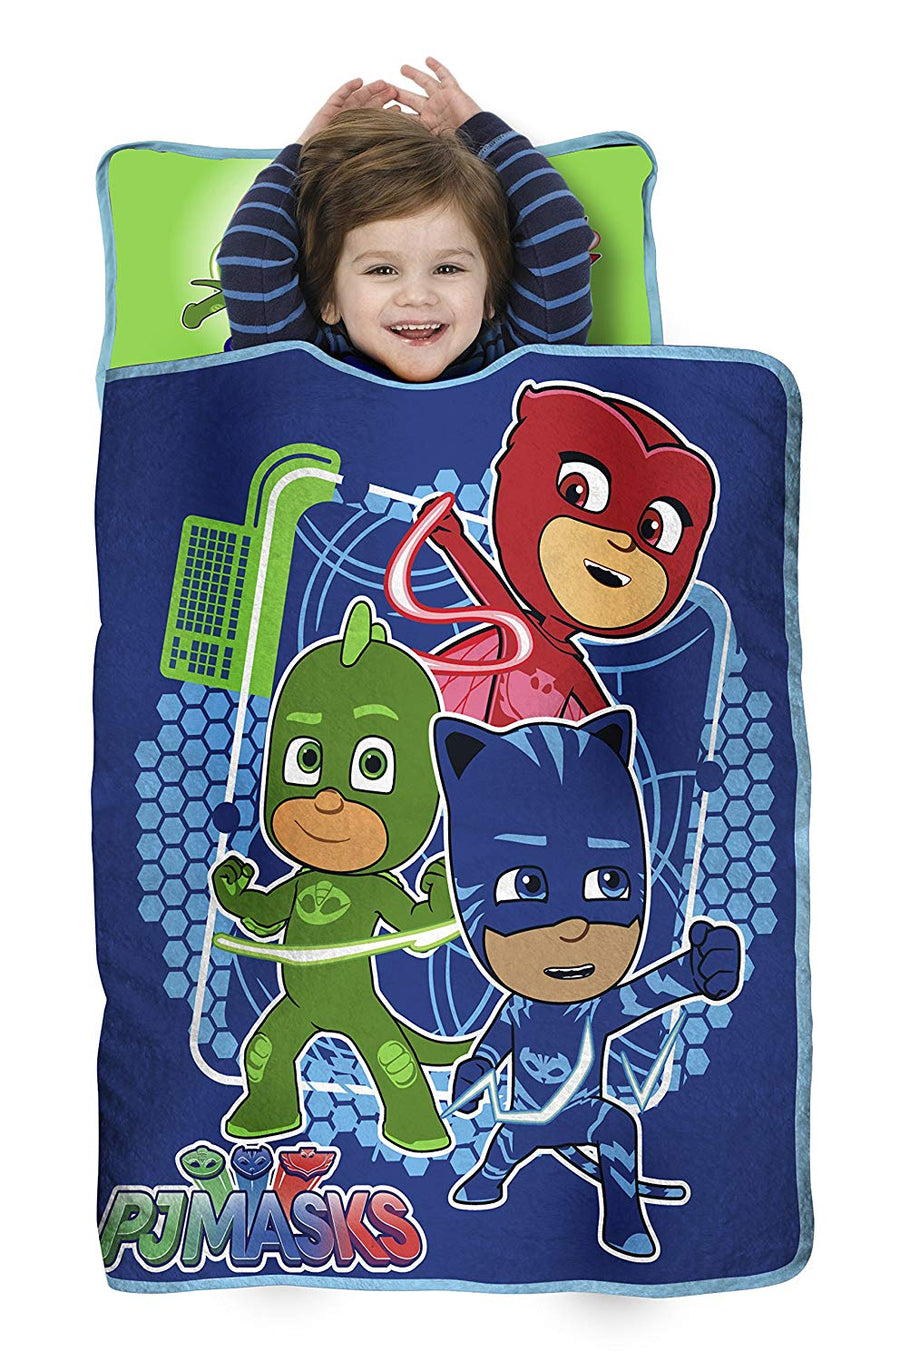 PJ Masks All Shout Hooray Kids Nap Mat - Includes Pillow & Fleece Blanket, Blue/Green